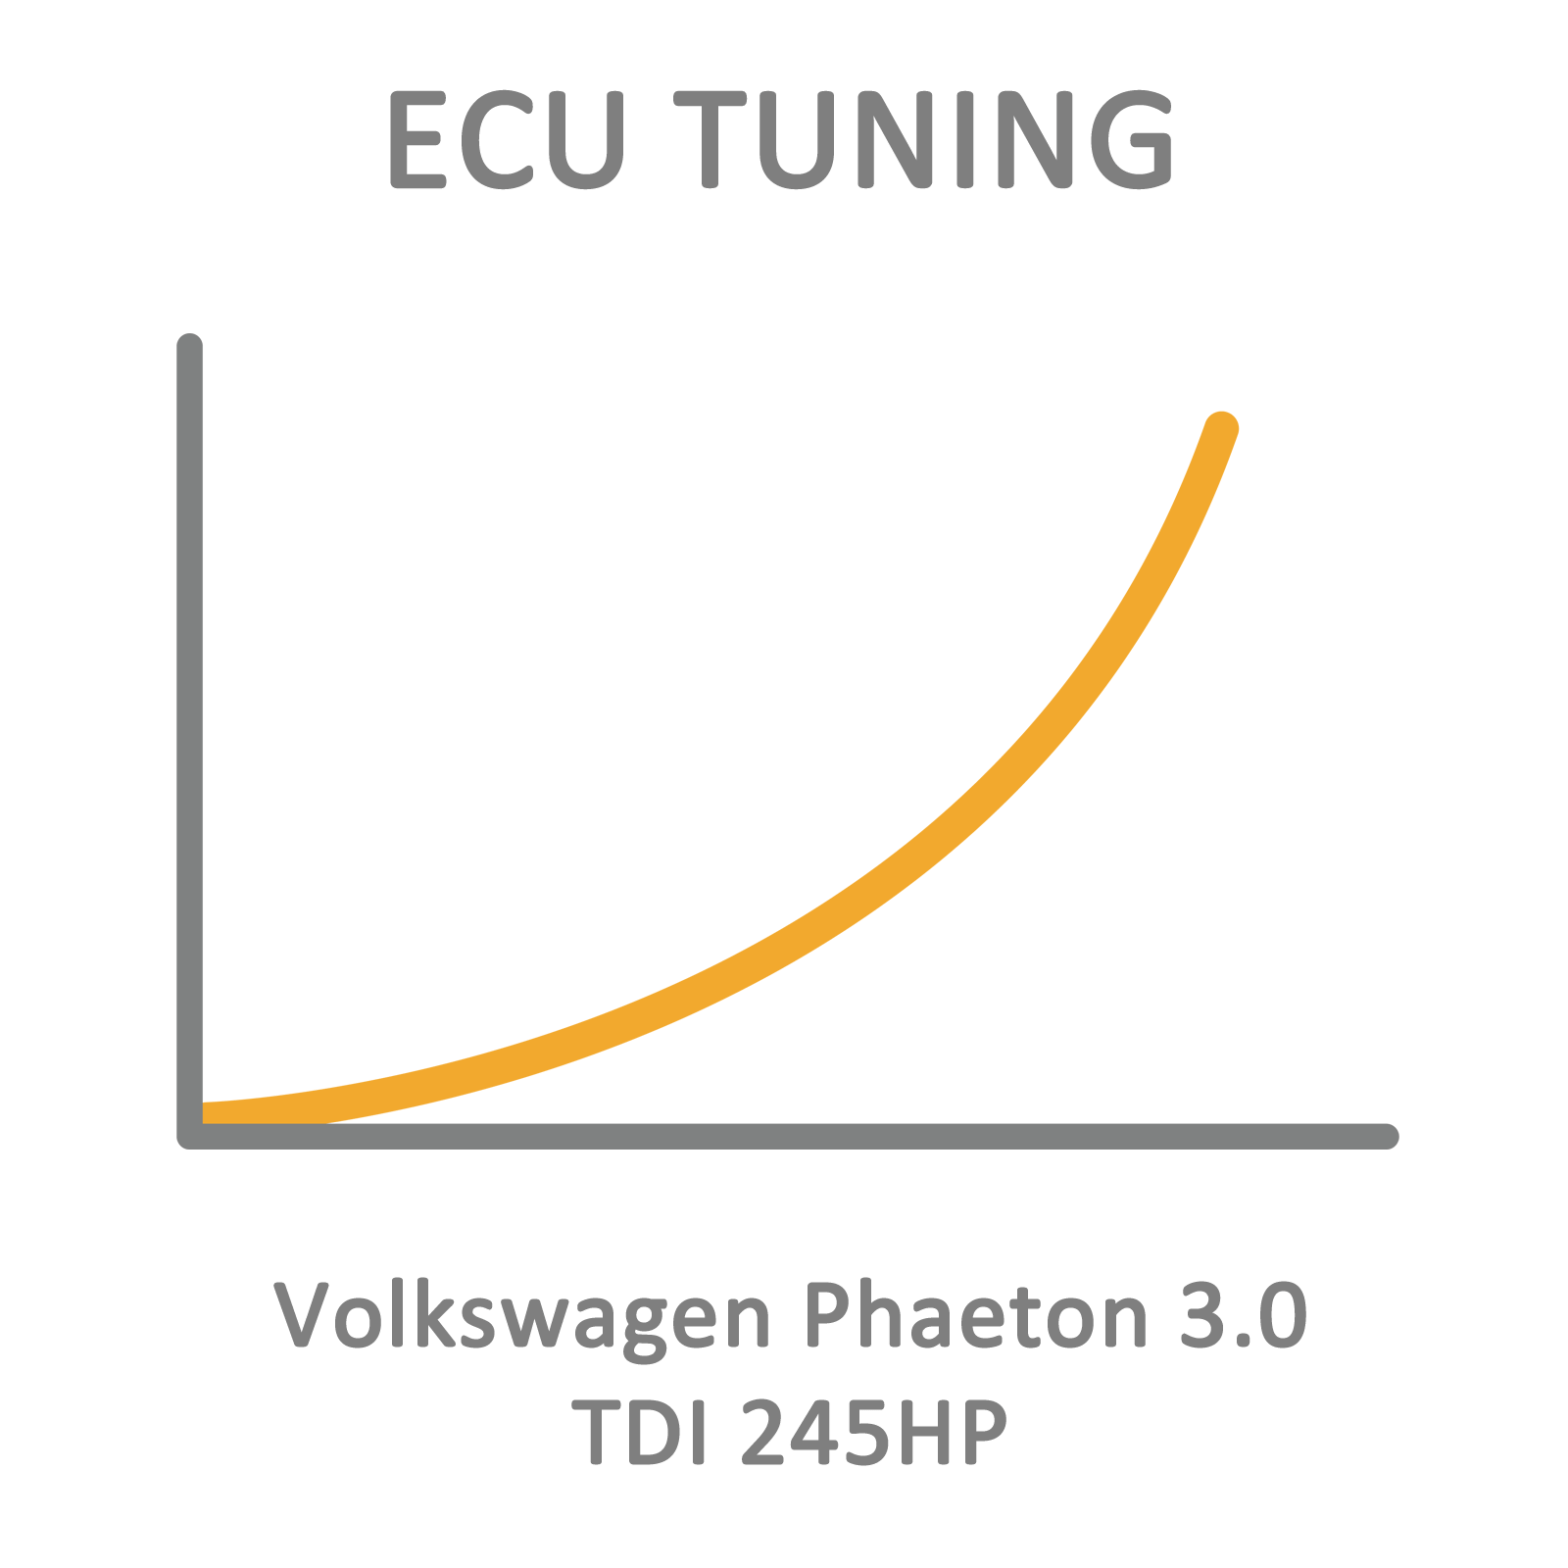 Volkswagen Phaeton 3.0 TDI 245HP ECU Tuning Remapping